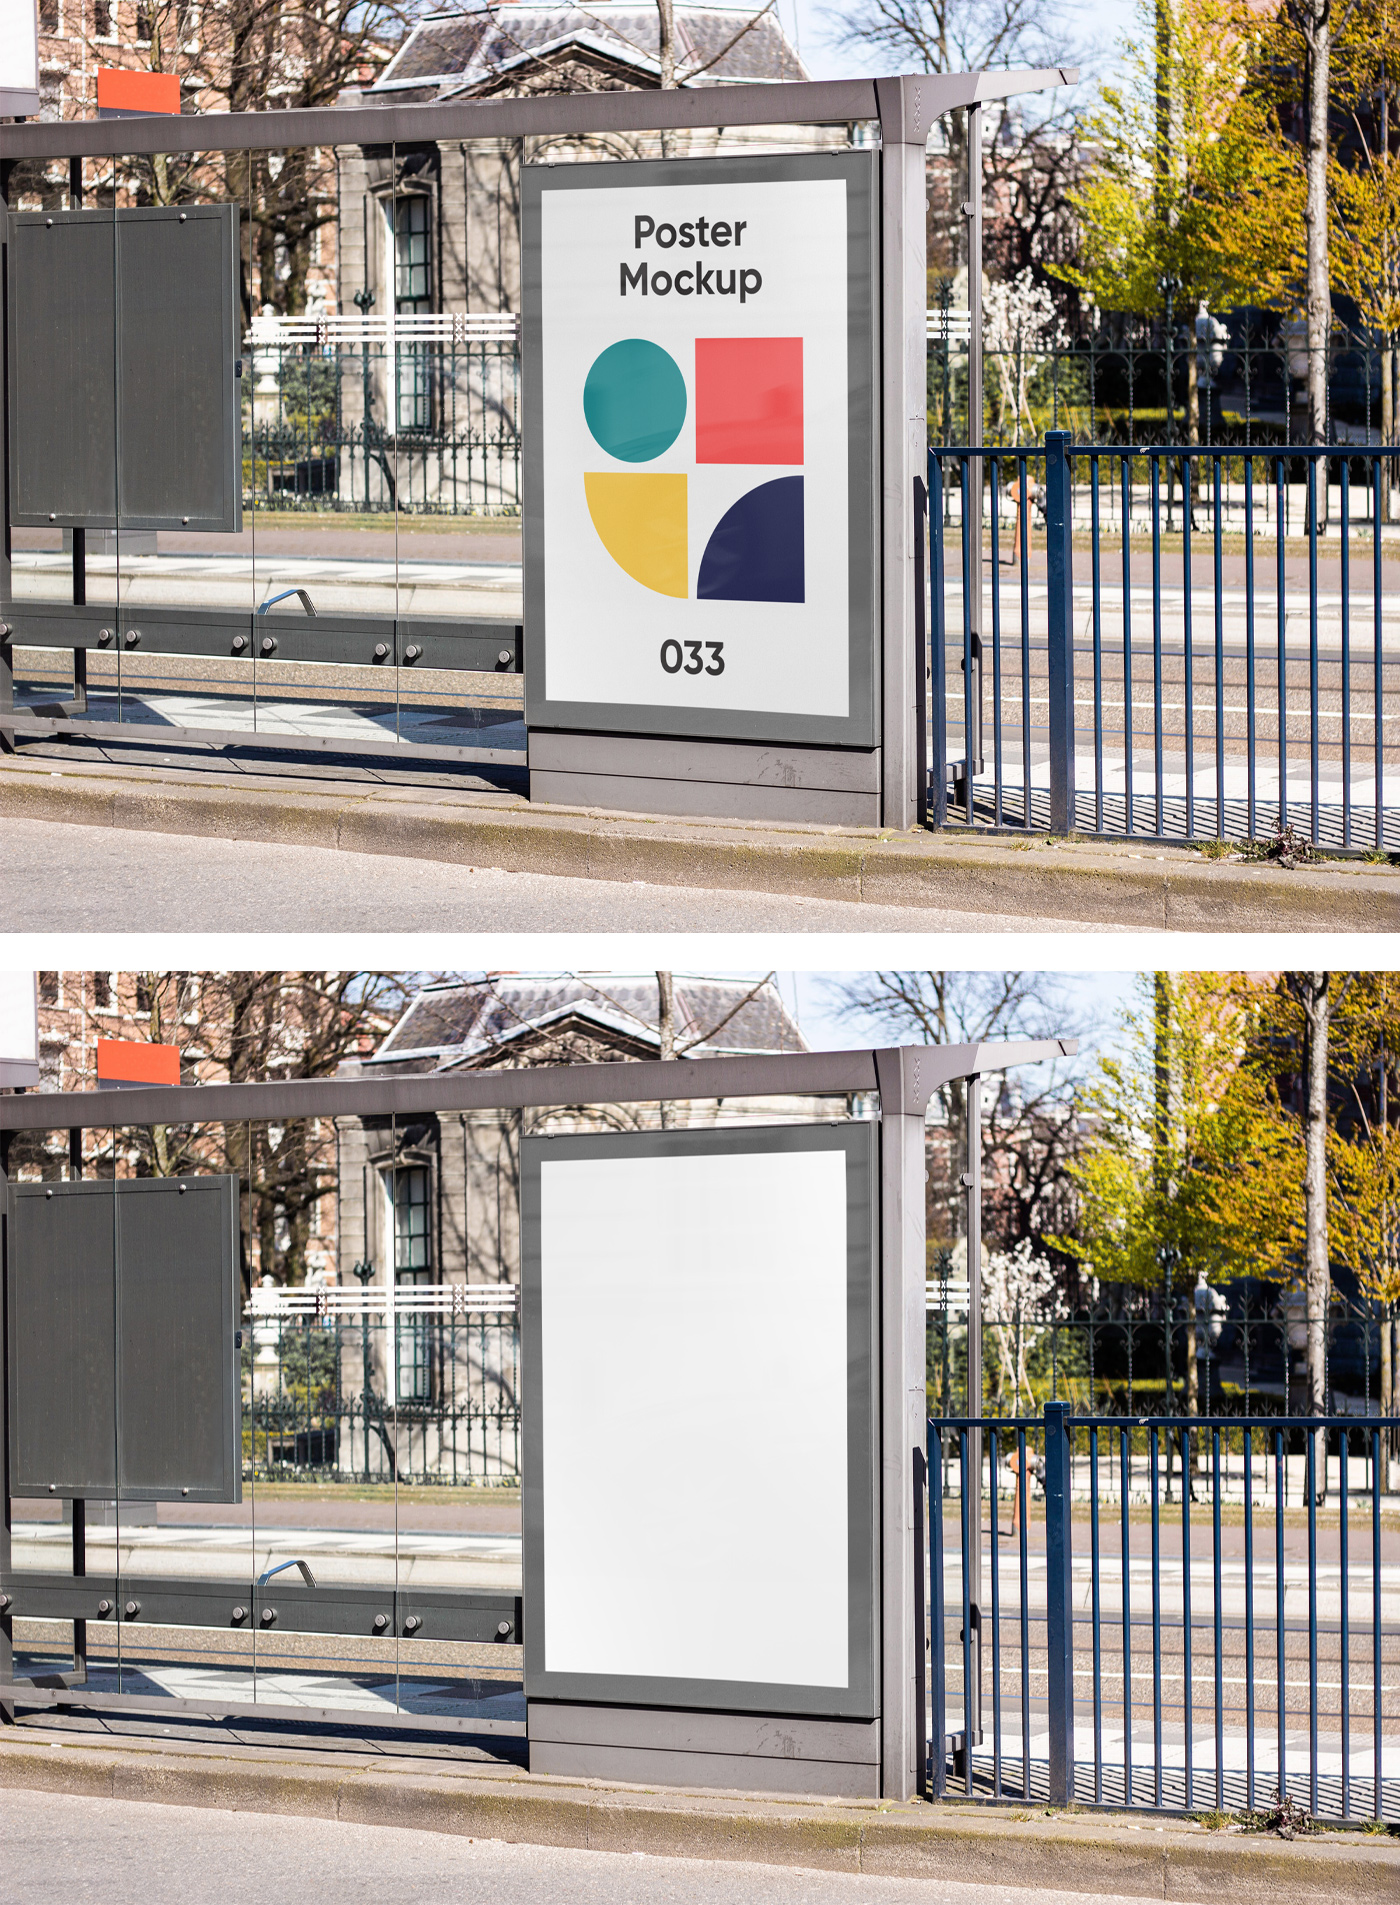 Poster on Bus Stop Mockup